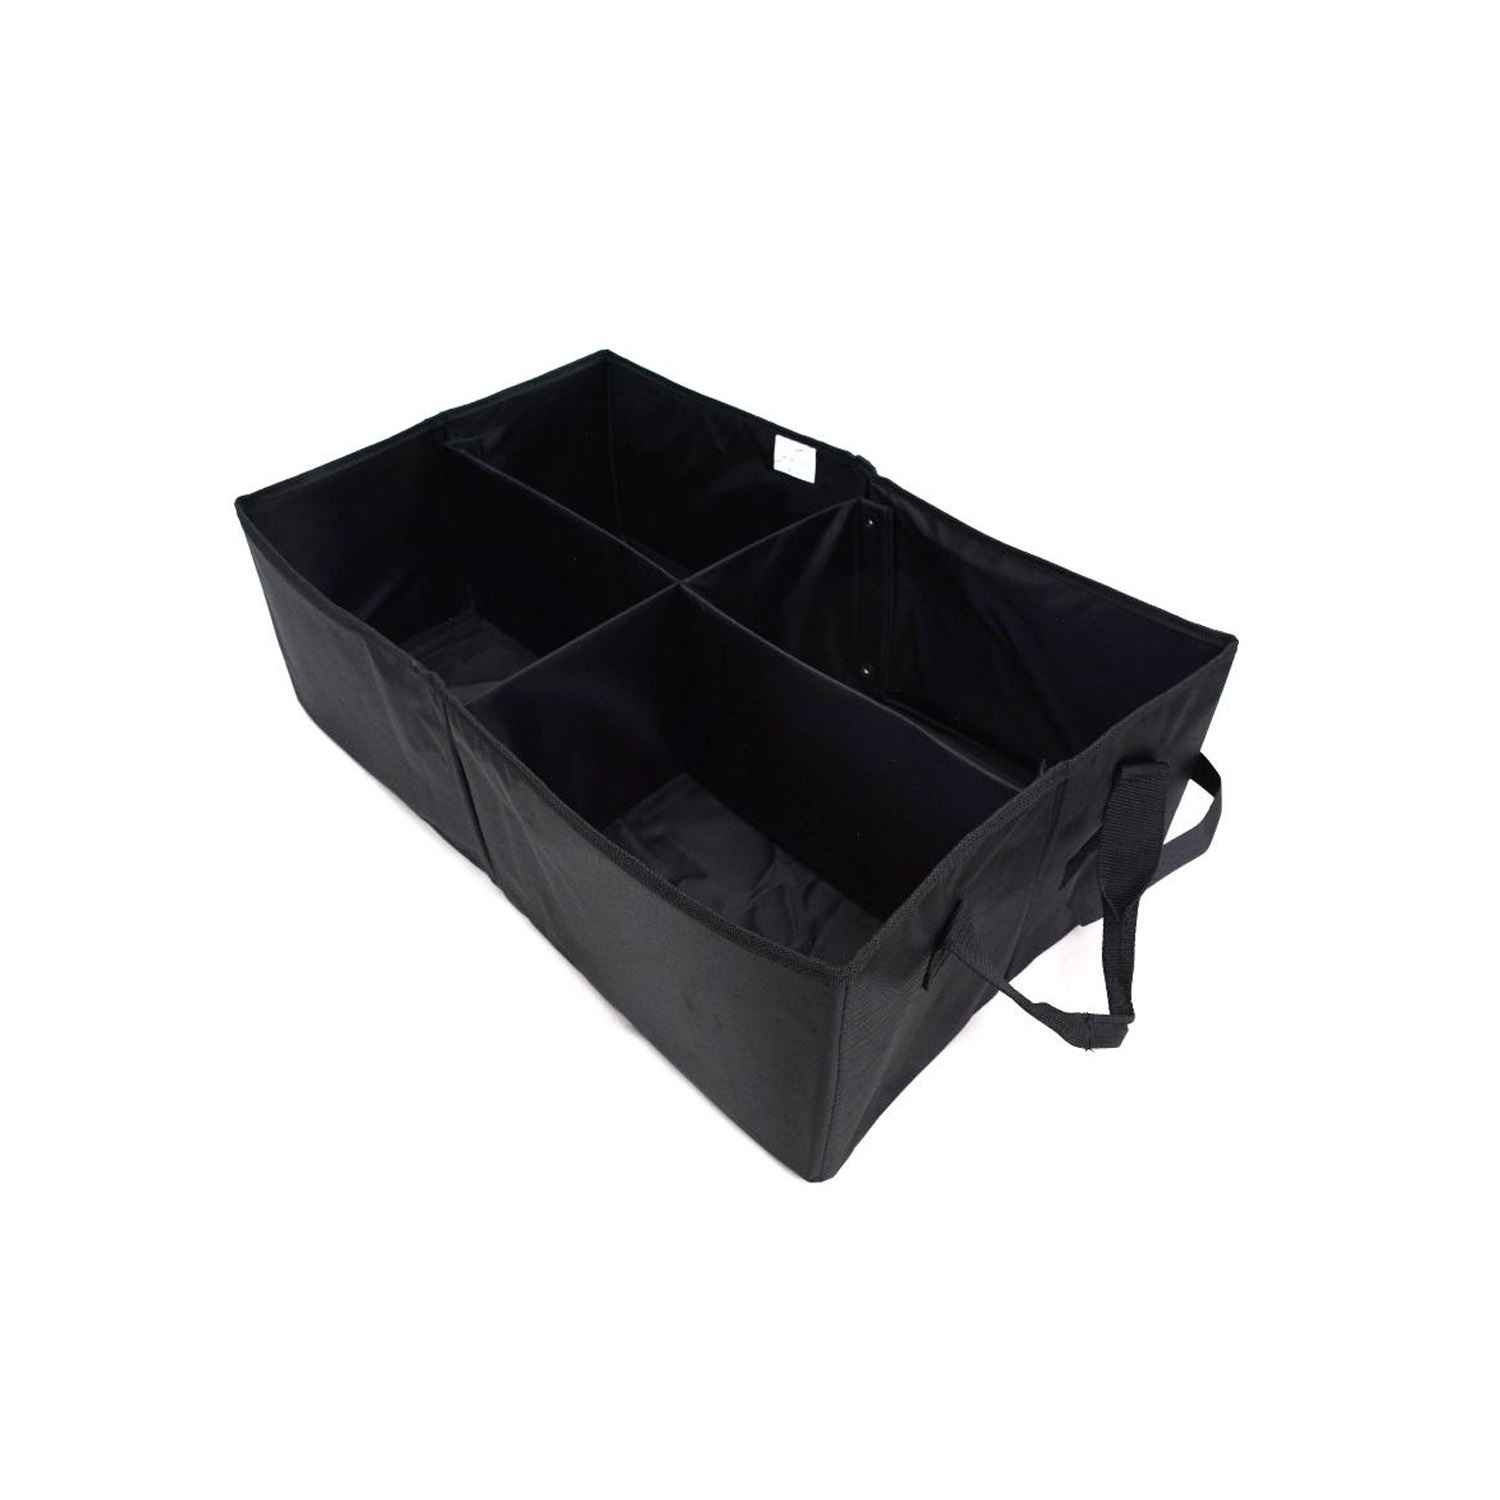 OEM 2013 Jeep Wrangler JK 2-Door Cargo Tote (Part #82208566)